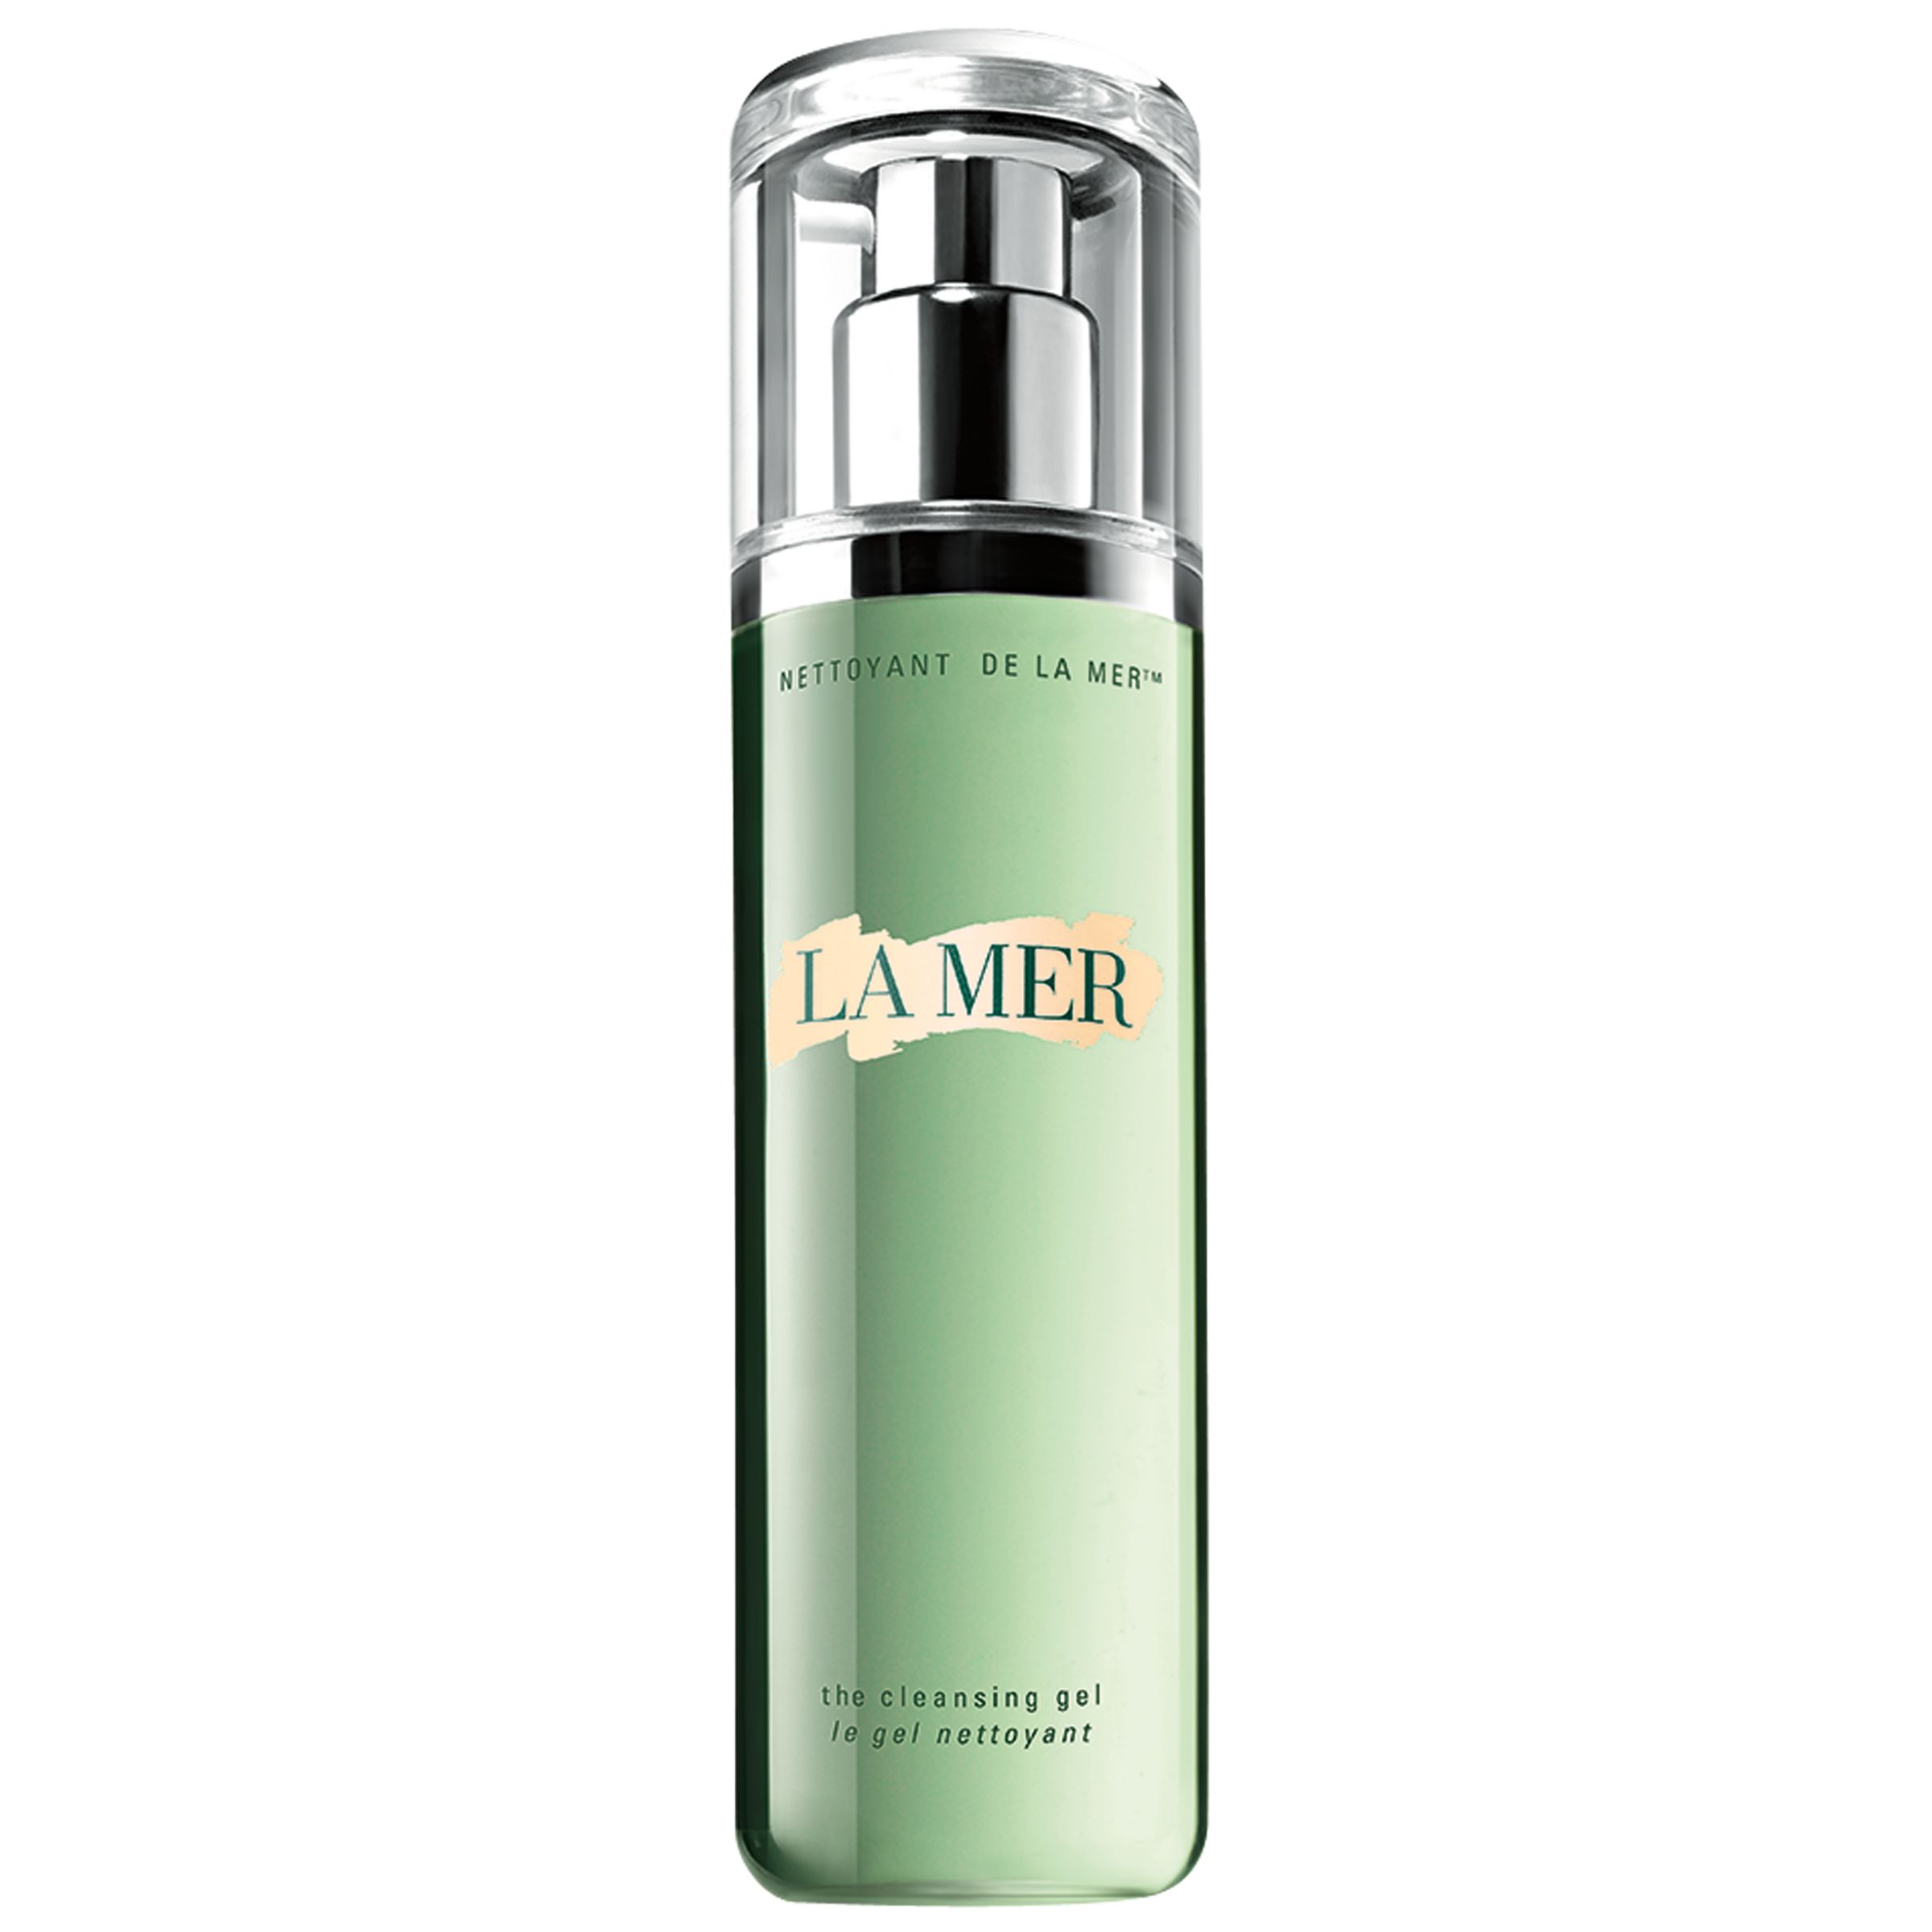 La Mer La Mer The Cleansing Gel, 200 ml